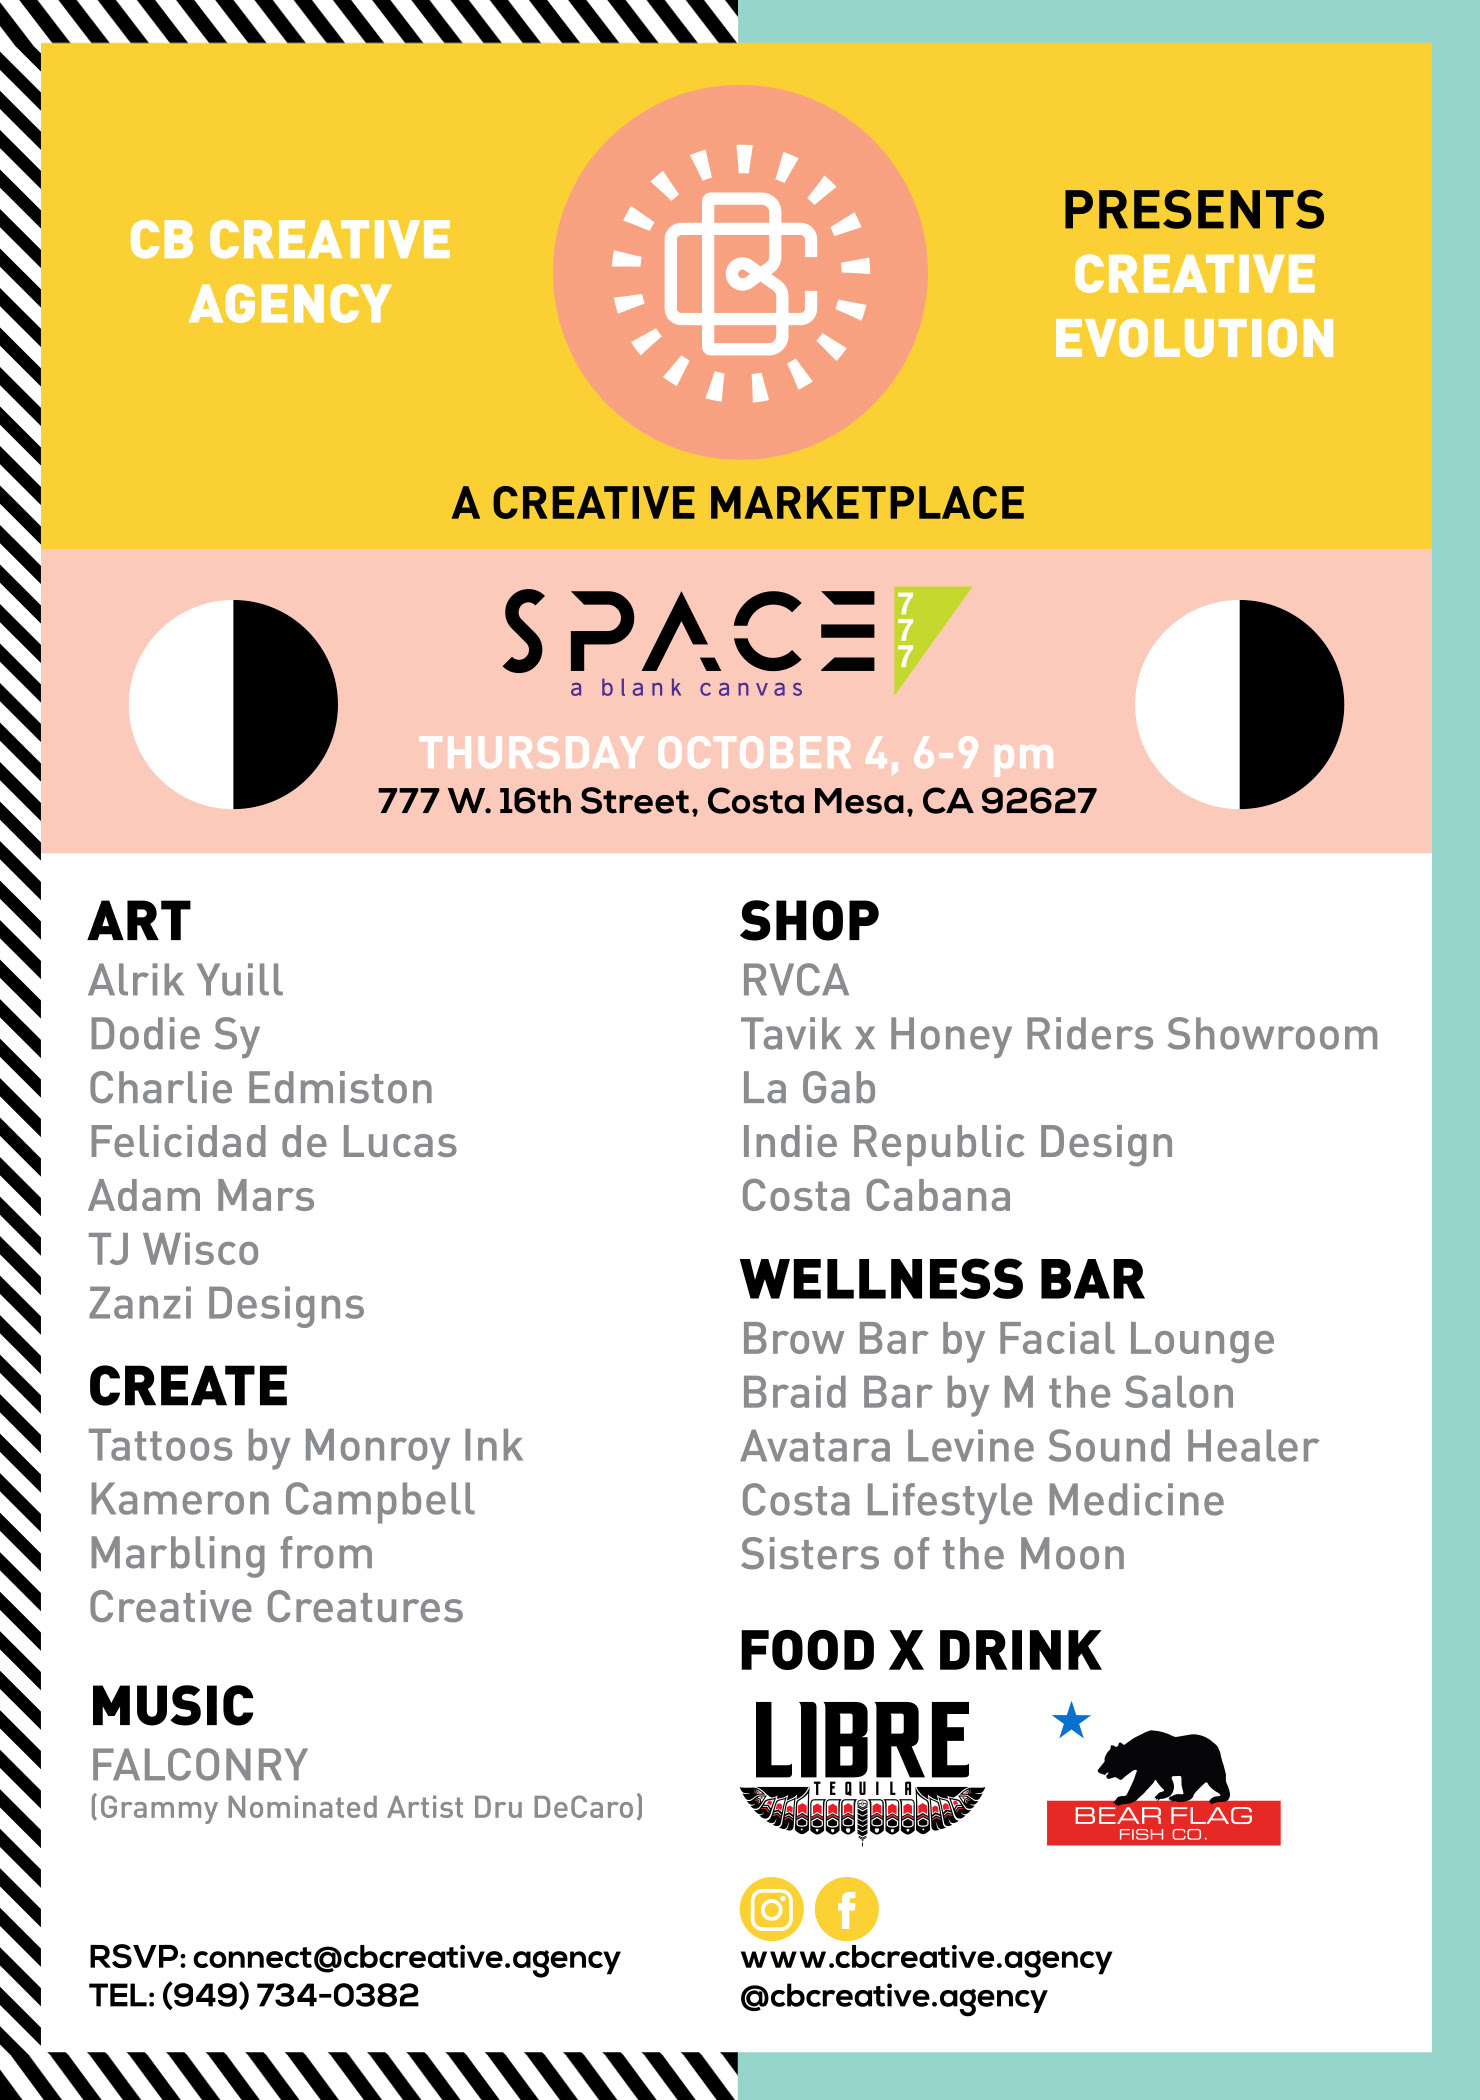 CREATIVE EVOLUTION EXHIBITION - OCTOBER 4TH 2018 6-9PM777 W 16TH STREET, COSTA MESA, CADebuting